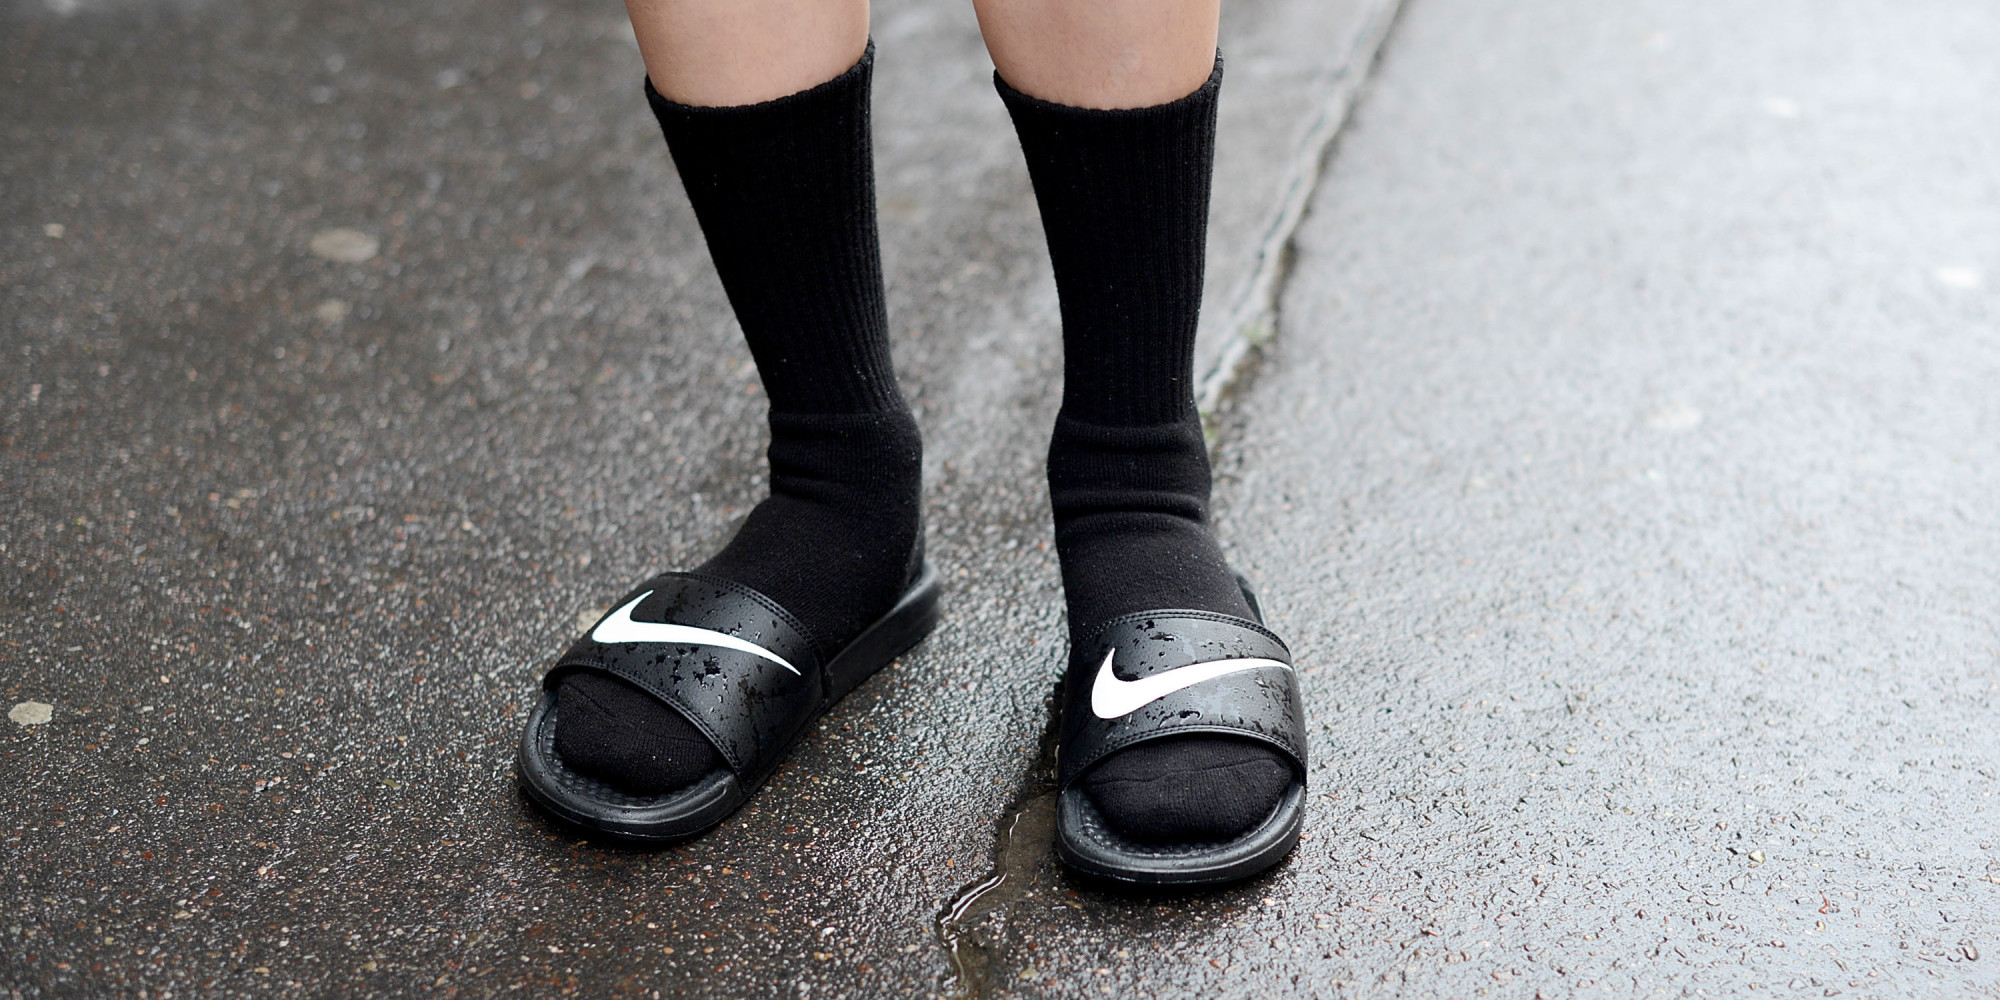 Brilliant People Have Strong Opinions About Wearing Socks With Sandals I Interviewed Five Men And Five Women Regarding Their Thoughts On The Look, And The Results Were Divided Fairly Evenly Four Women And Two Men Were In Favor Of The Look,